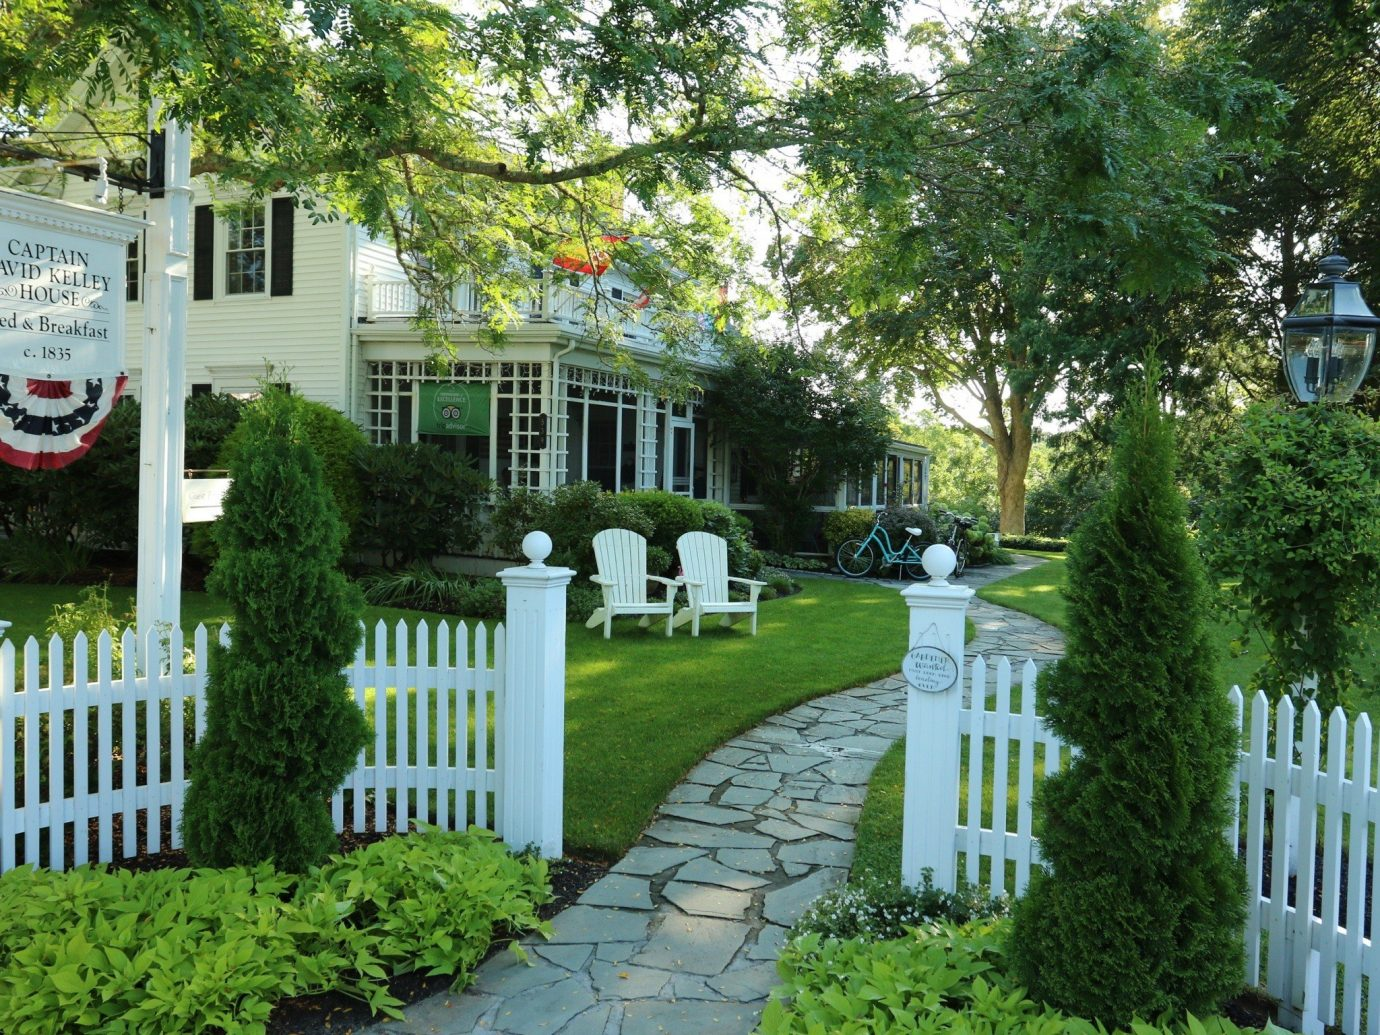 Hotels tree outdoor grass Fence neighbourhood property home house Garden building walkway picket fence park yard outdoor structure estate residential area backyard real estate plant cottage landscaping mansion home fencing white shrub Courtyard lawn landscape plantation porch surrounded